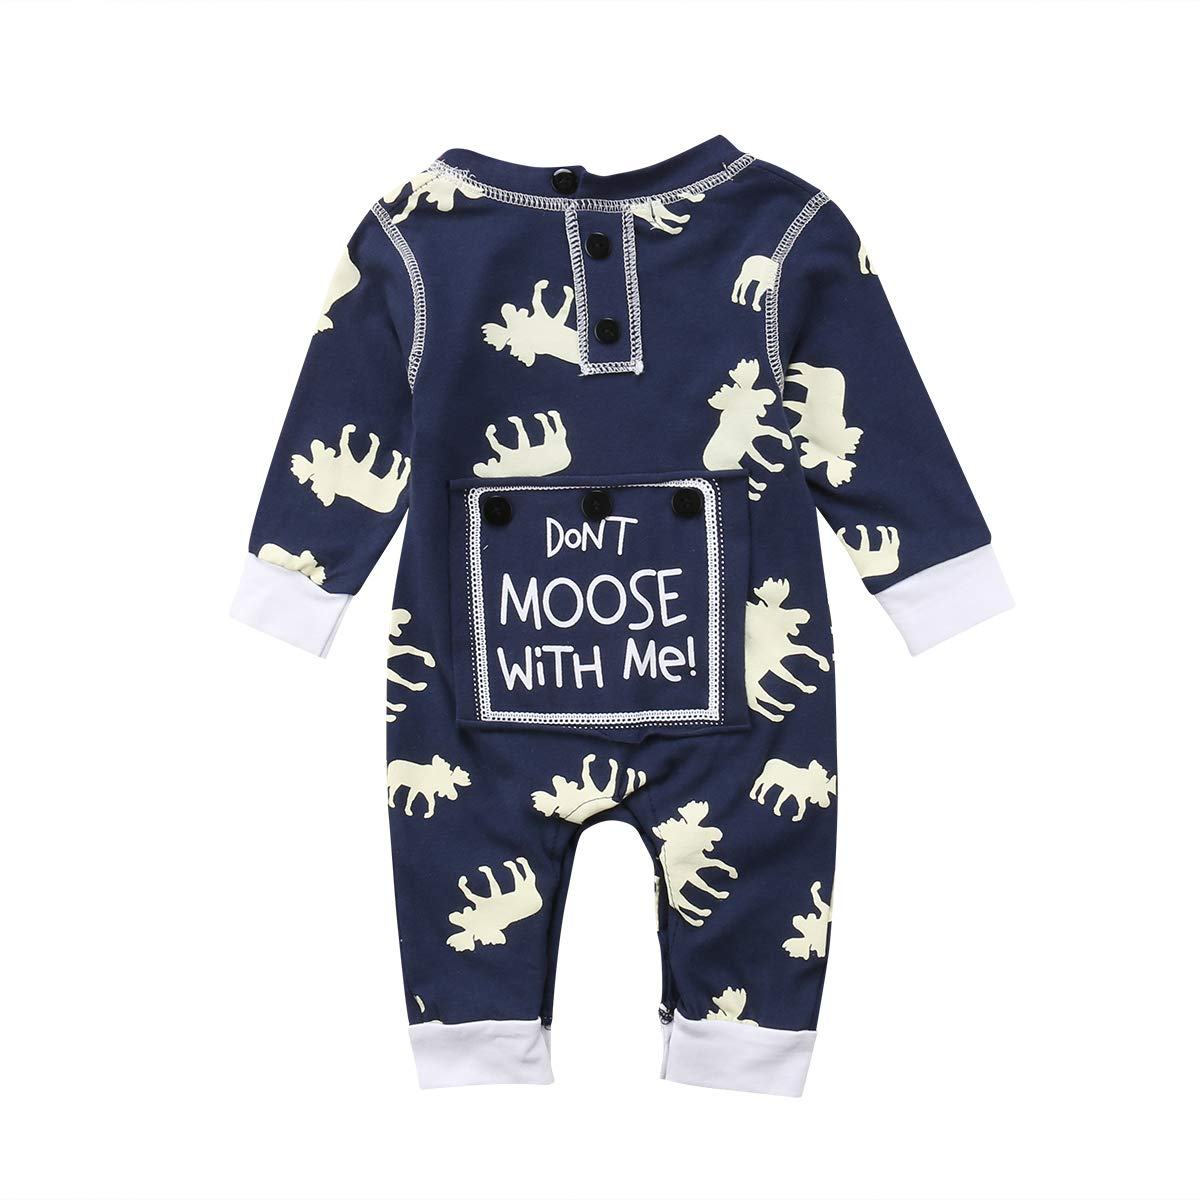 Toddler Infant Baby Girl Boy Long Sleeve Deer Romper Jumpsuit Pajamas XMAS Outfit Aliven